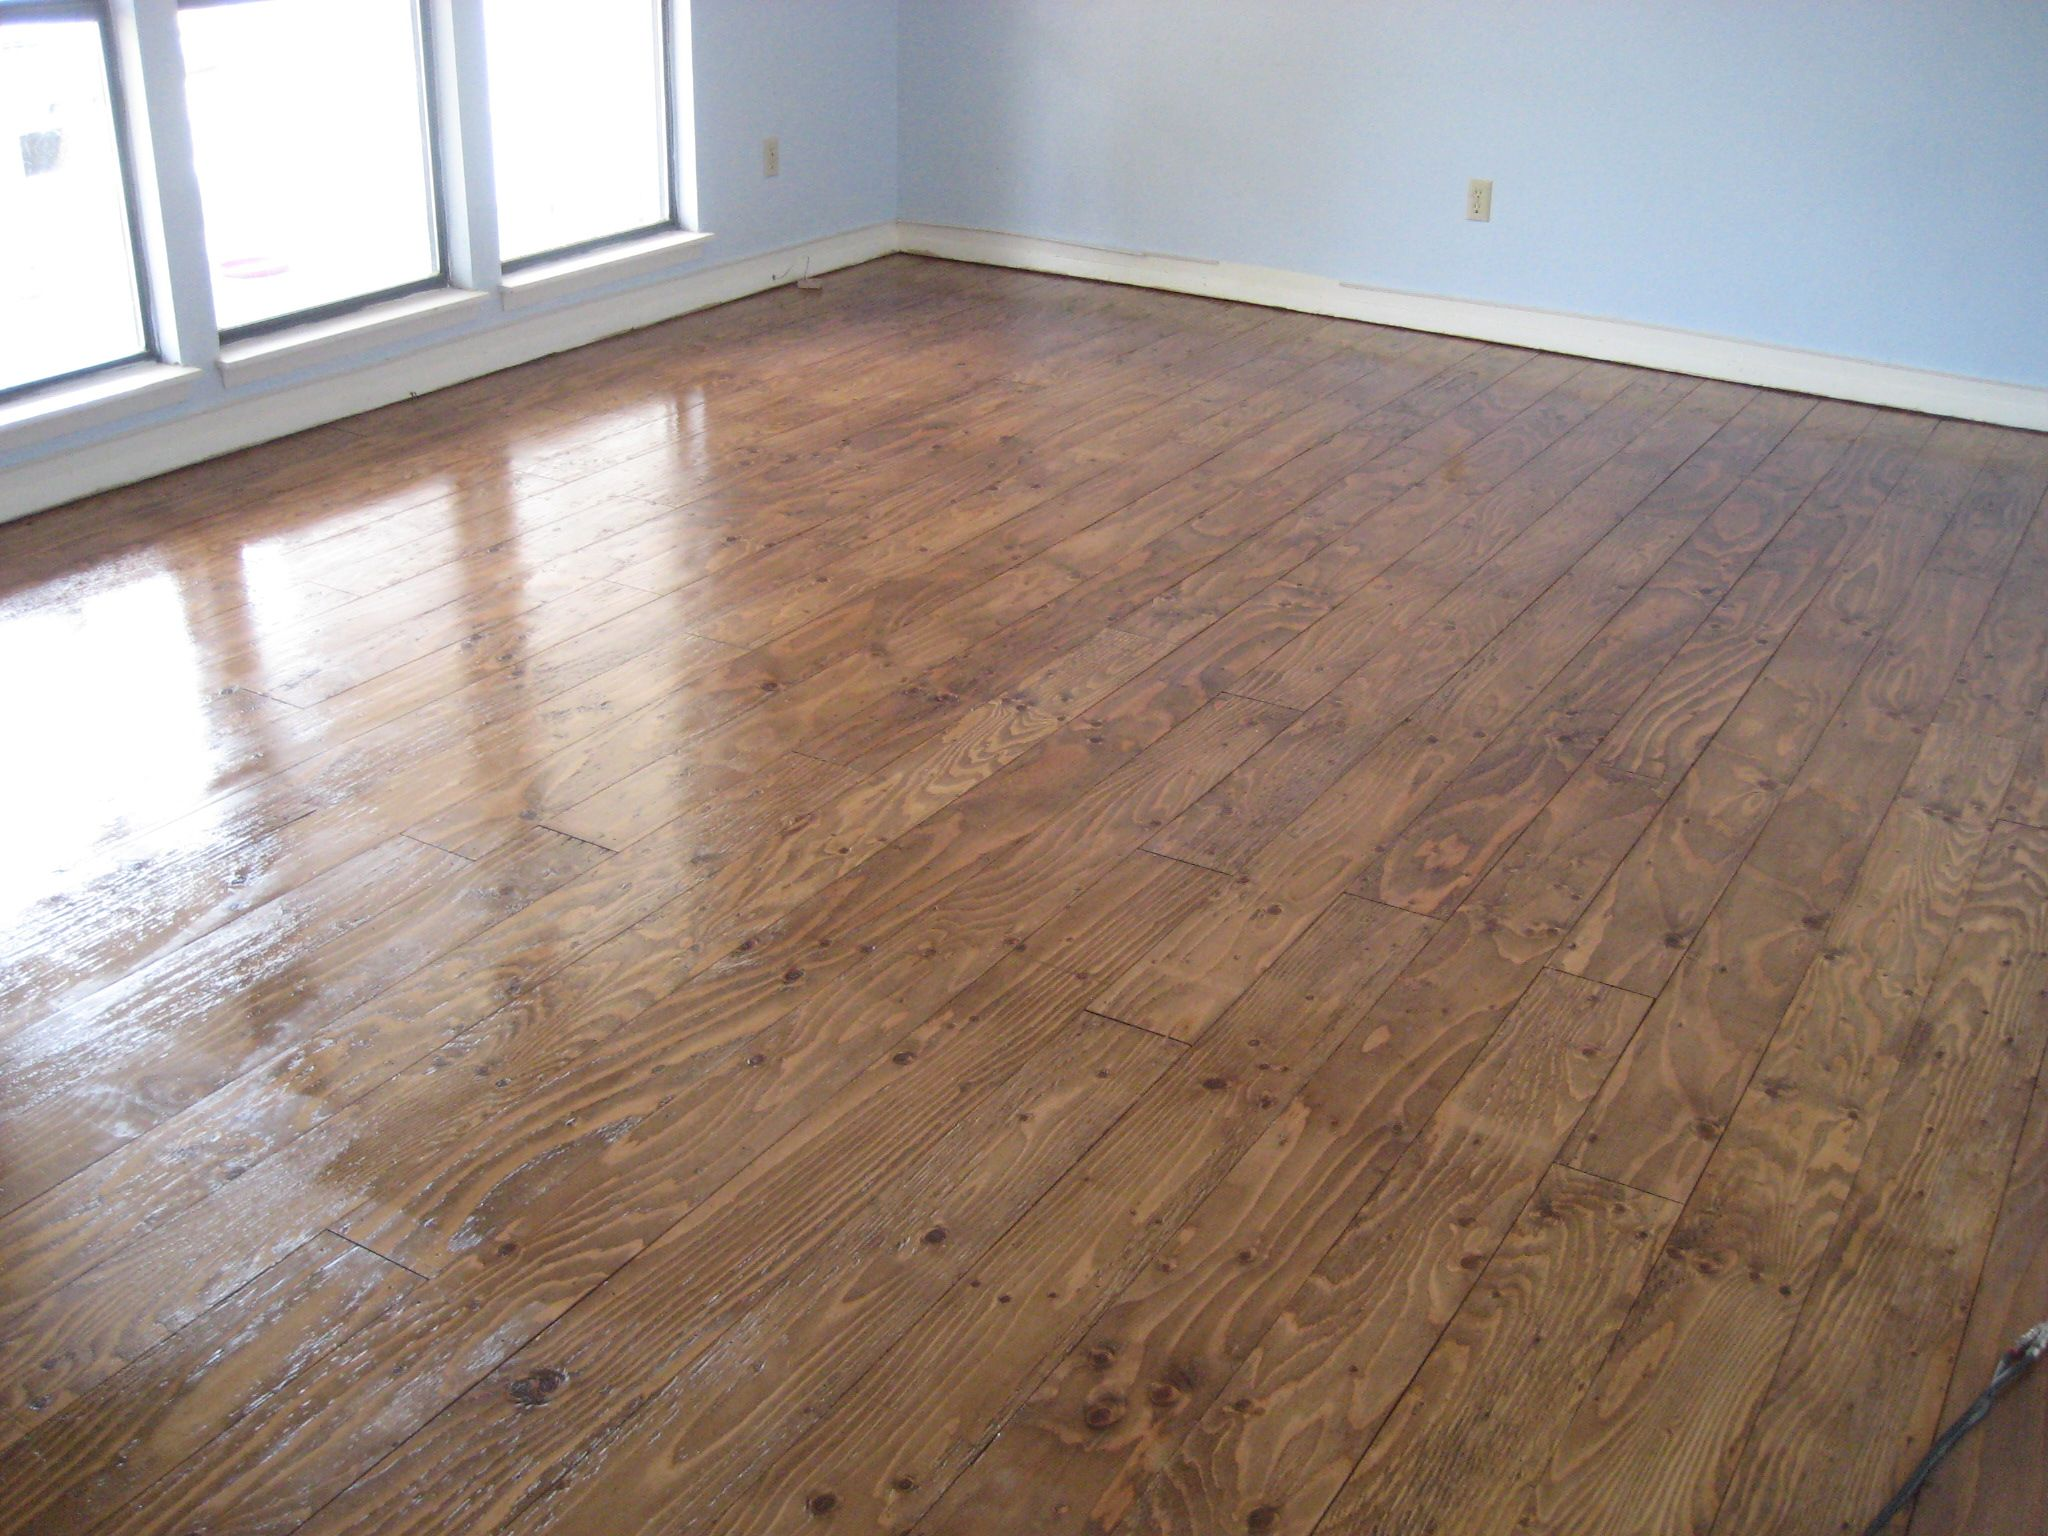 Painted Stained Concrete That Looks Like Tile Google Search Images Diy Flooring